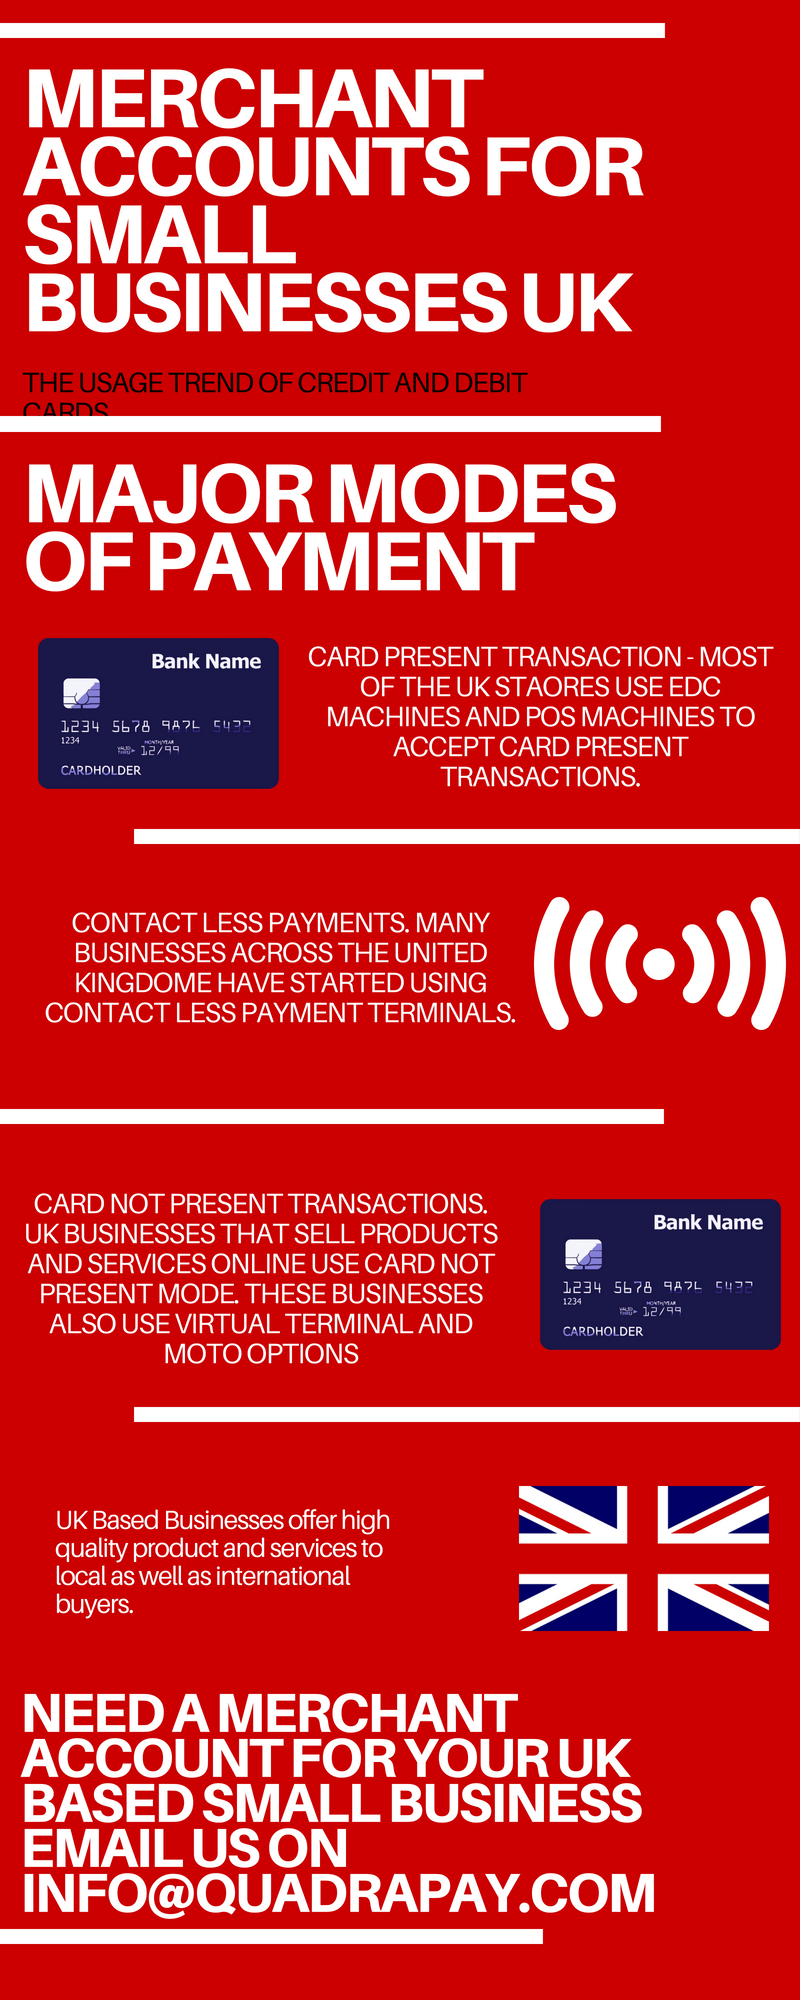 Merchant Accounts For Small Businesses UK